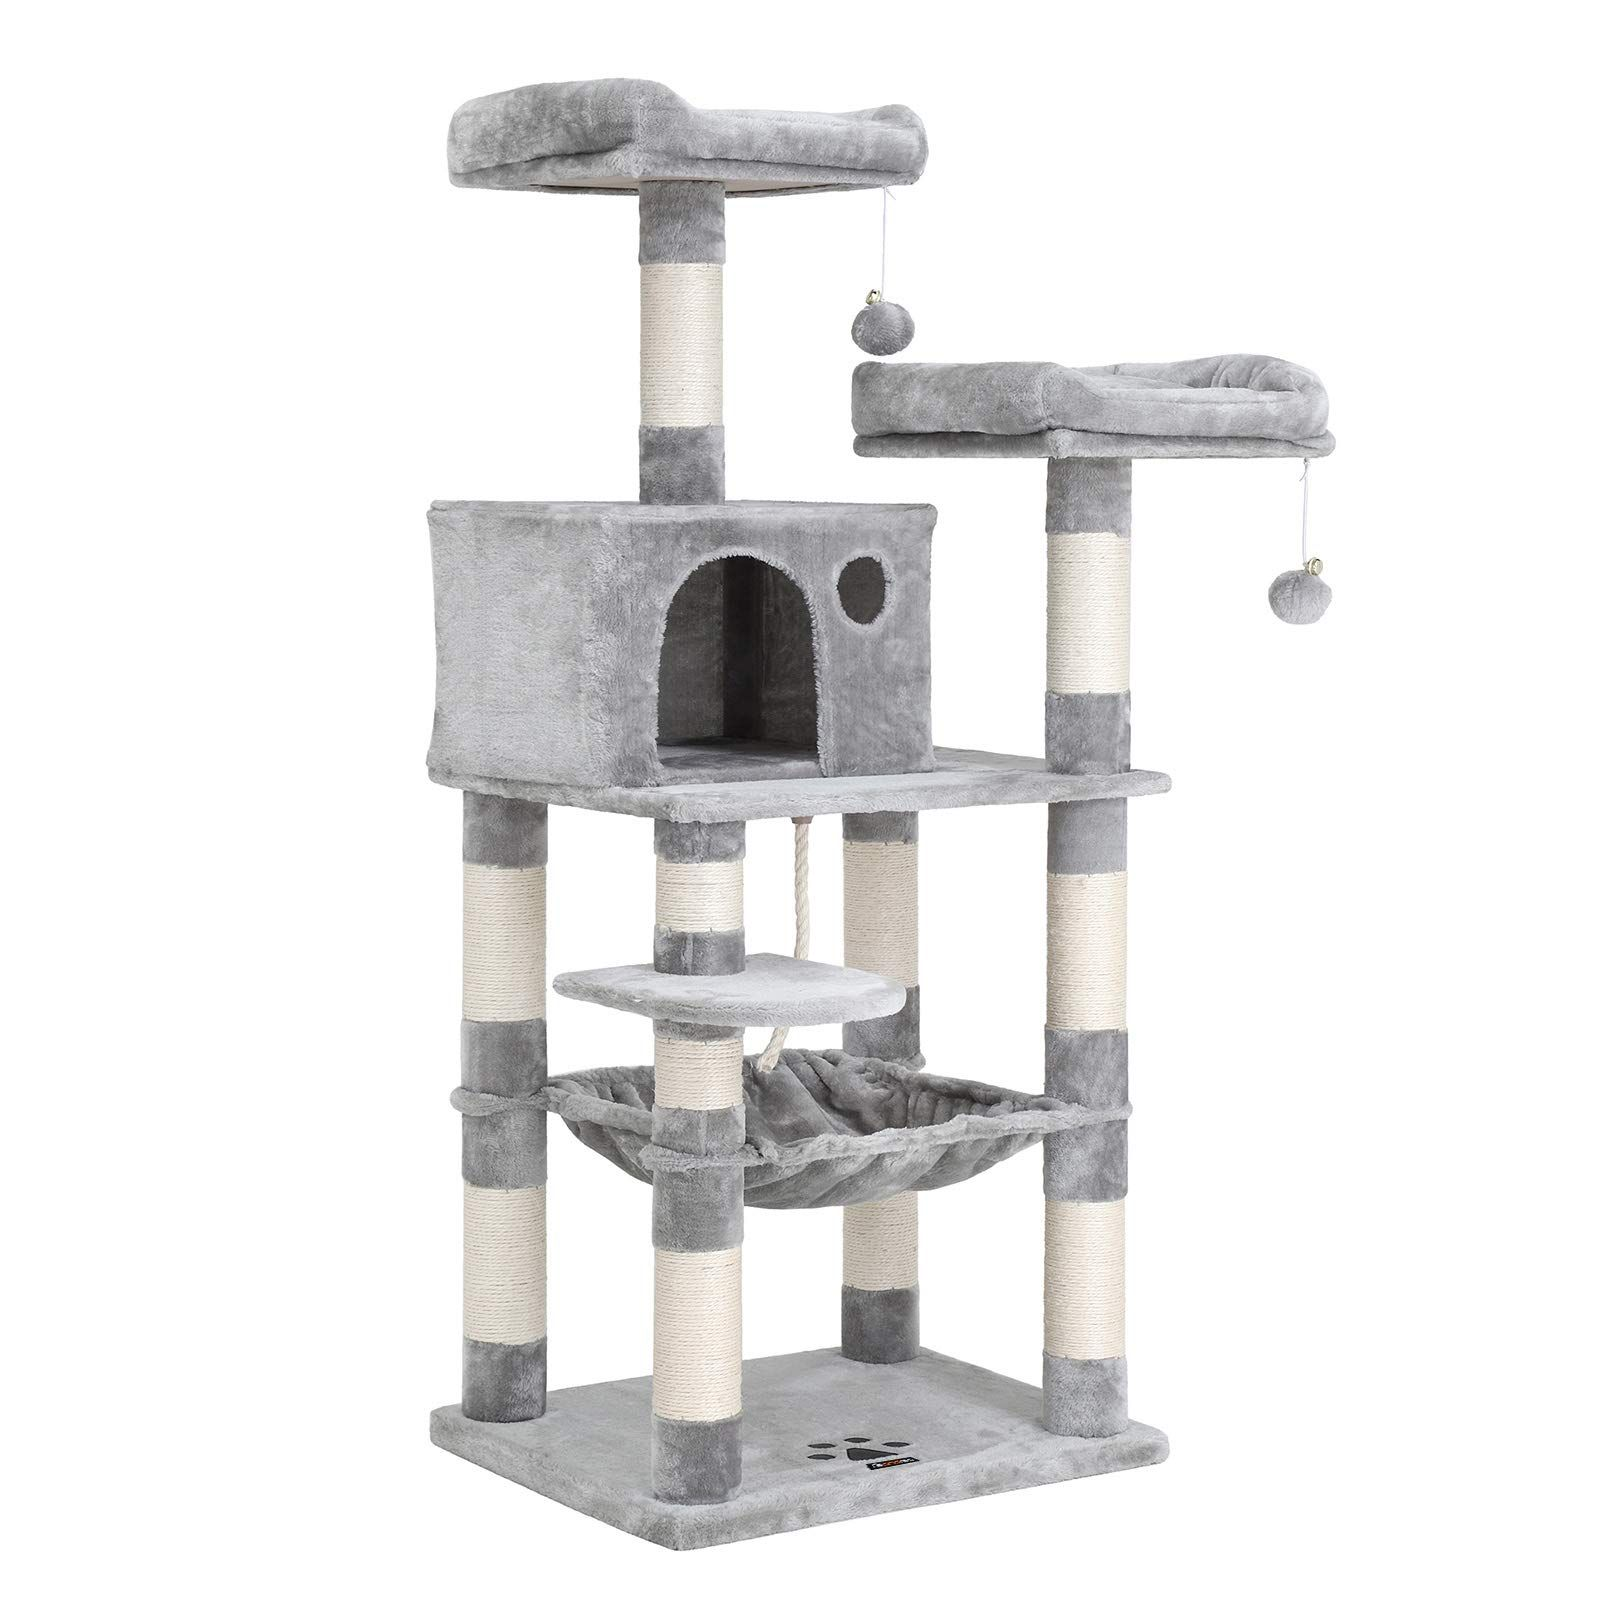 FEANDREA 56.3 inches MultiLevel Cat Tree with Sisal